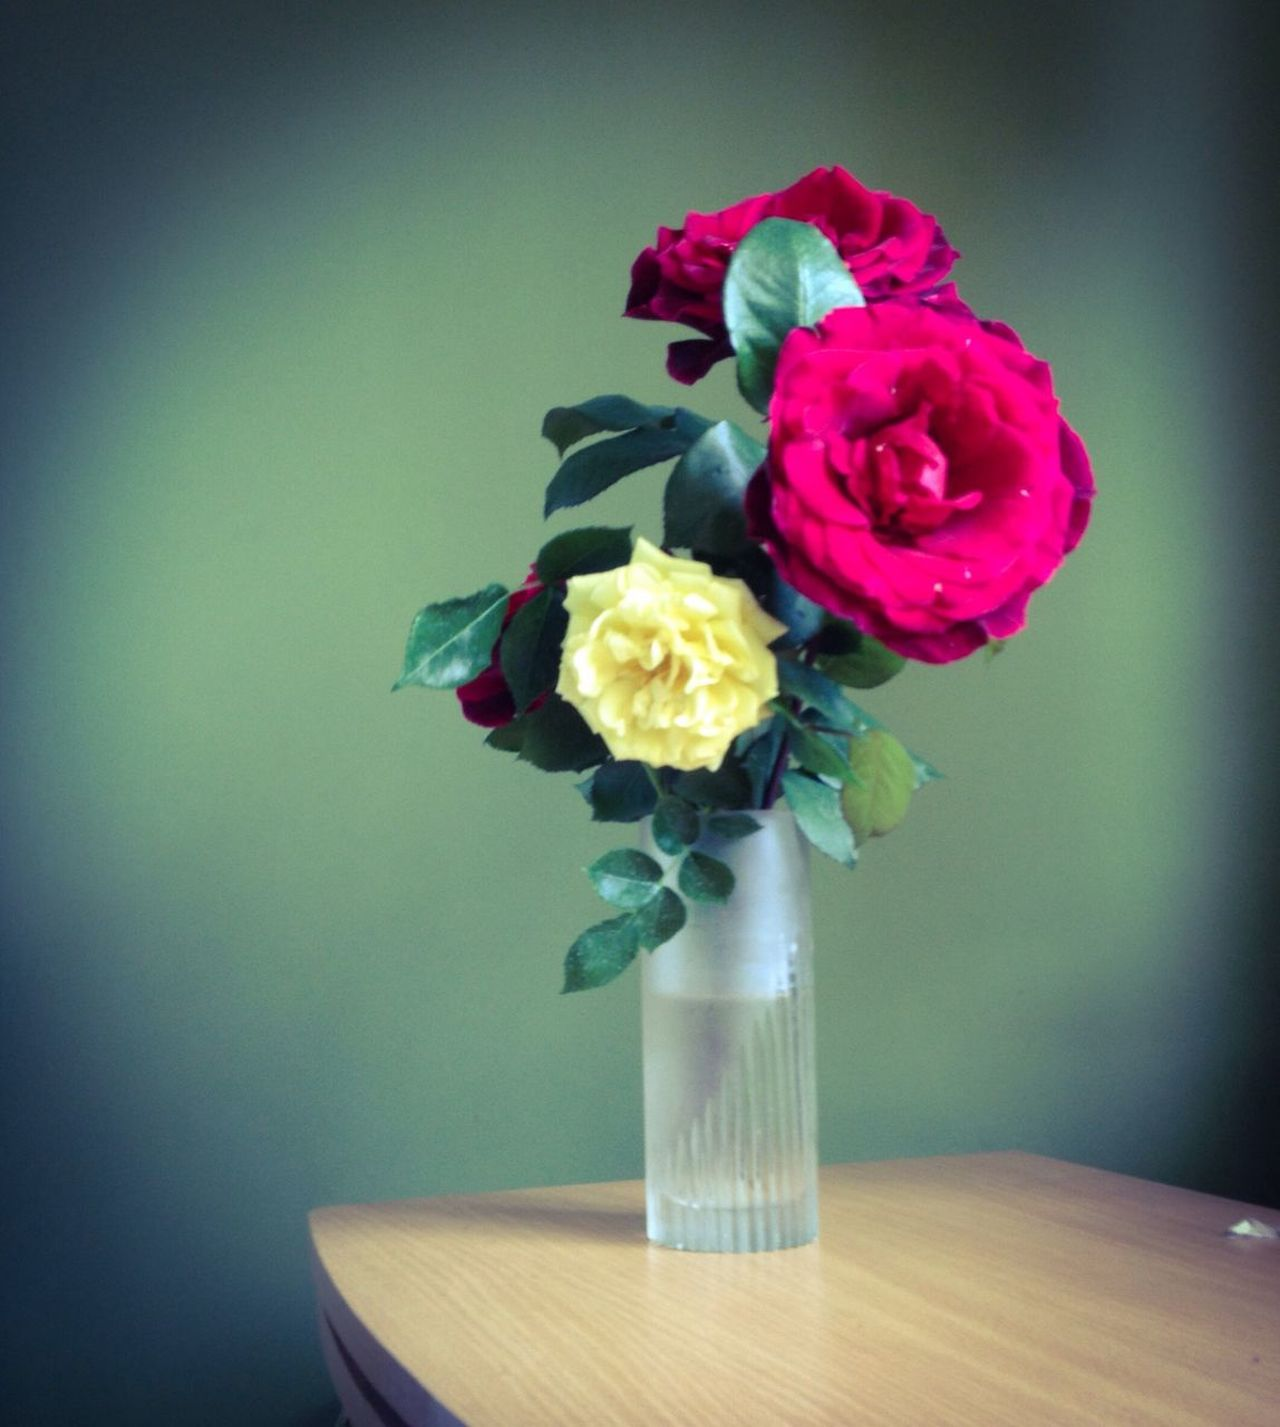 Roses Roses Rose♥ Red Red Roses Yellow Roses Flowers Bouquet Bouquet Of Roses Vase Blossom